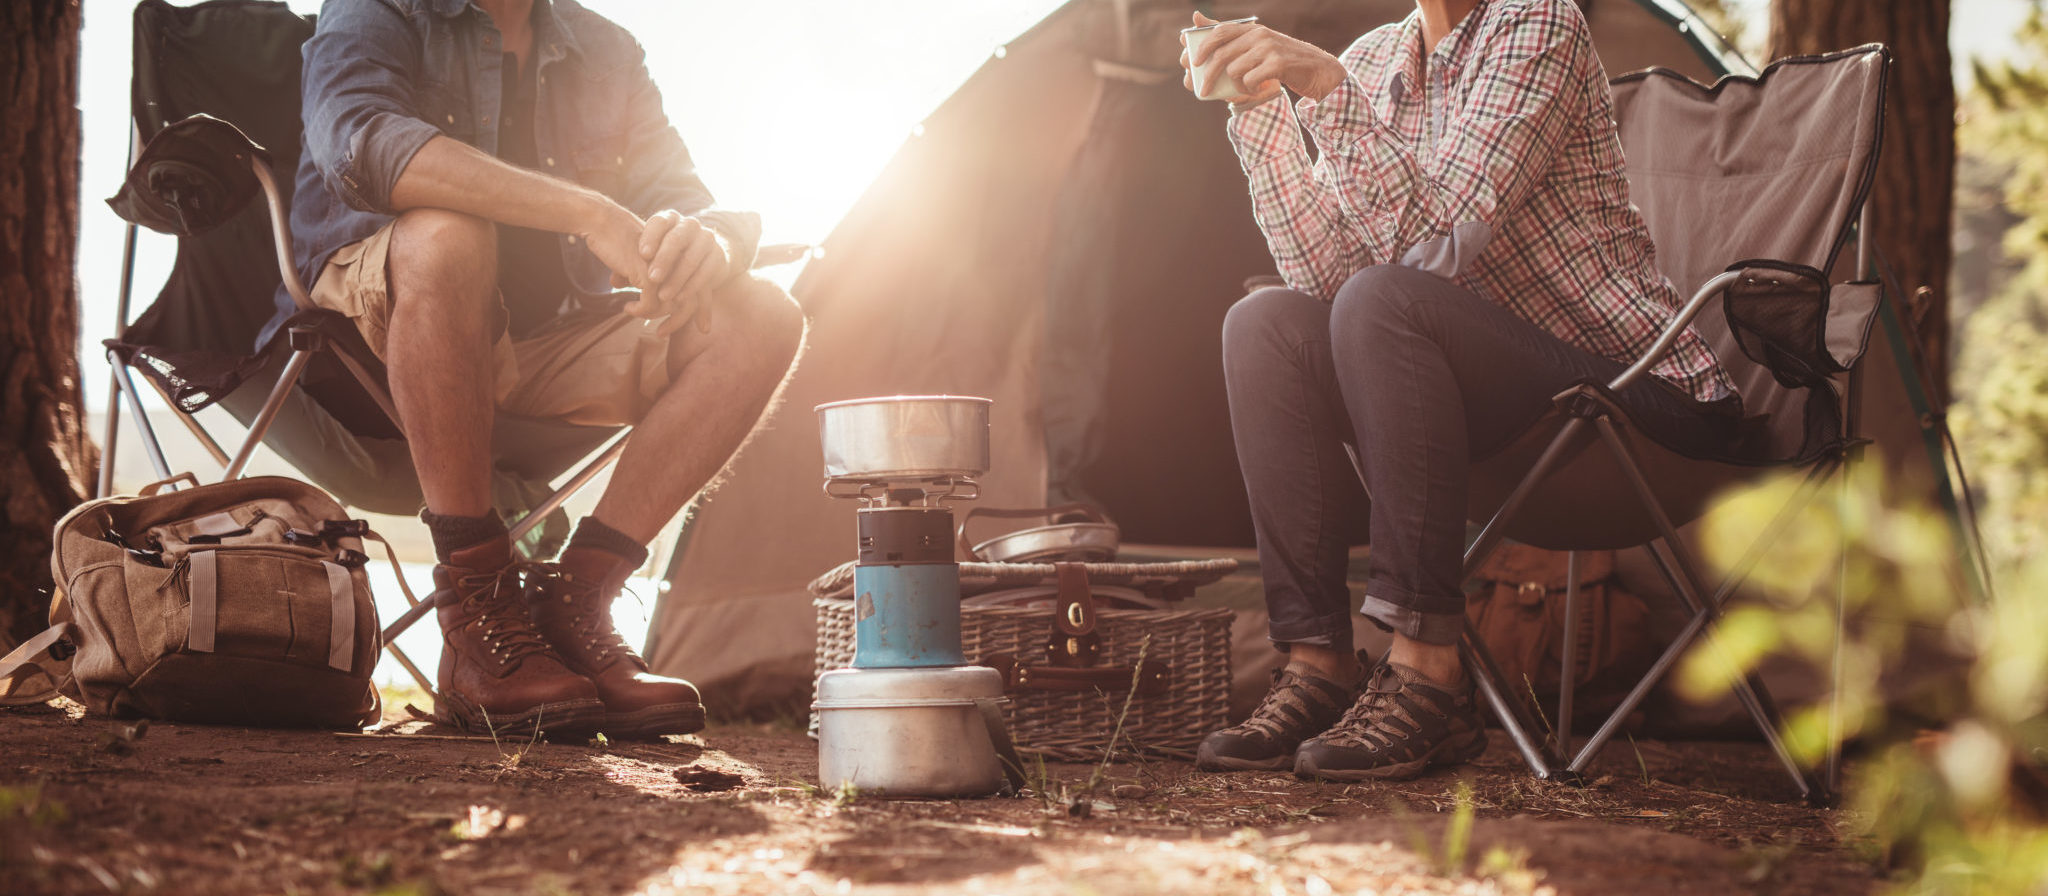 Start planning your next camping trip now, whether you decide to go with a loved one, friends, or the entire family.